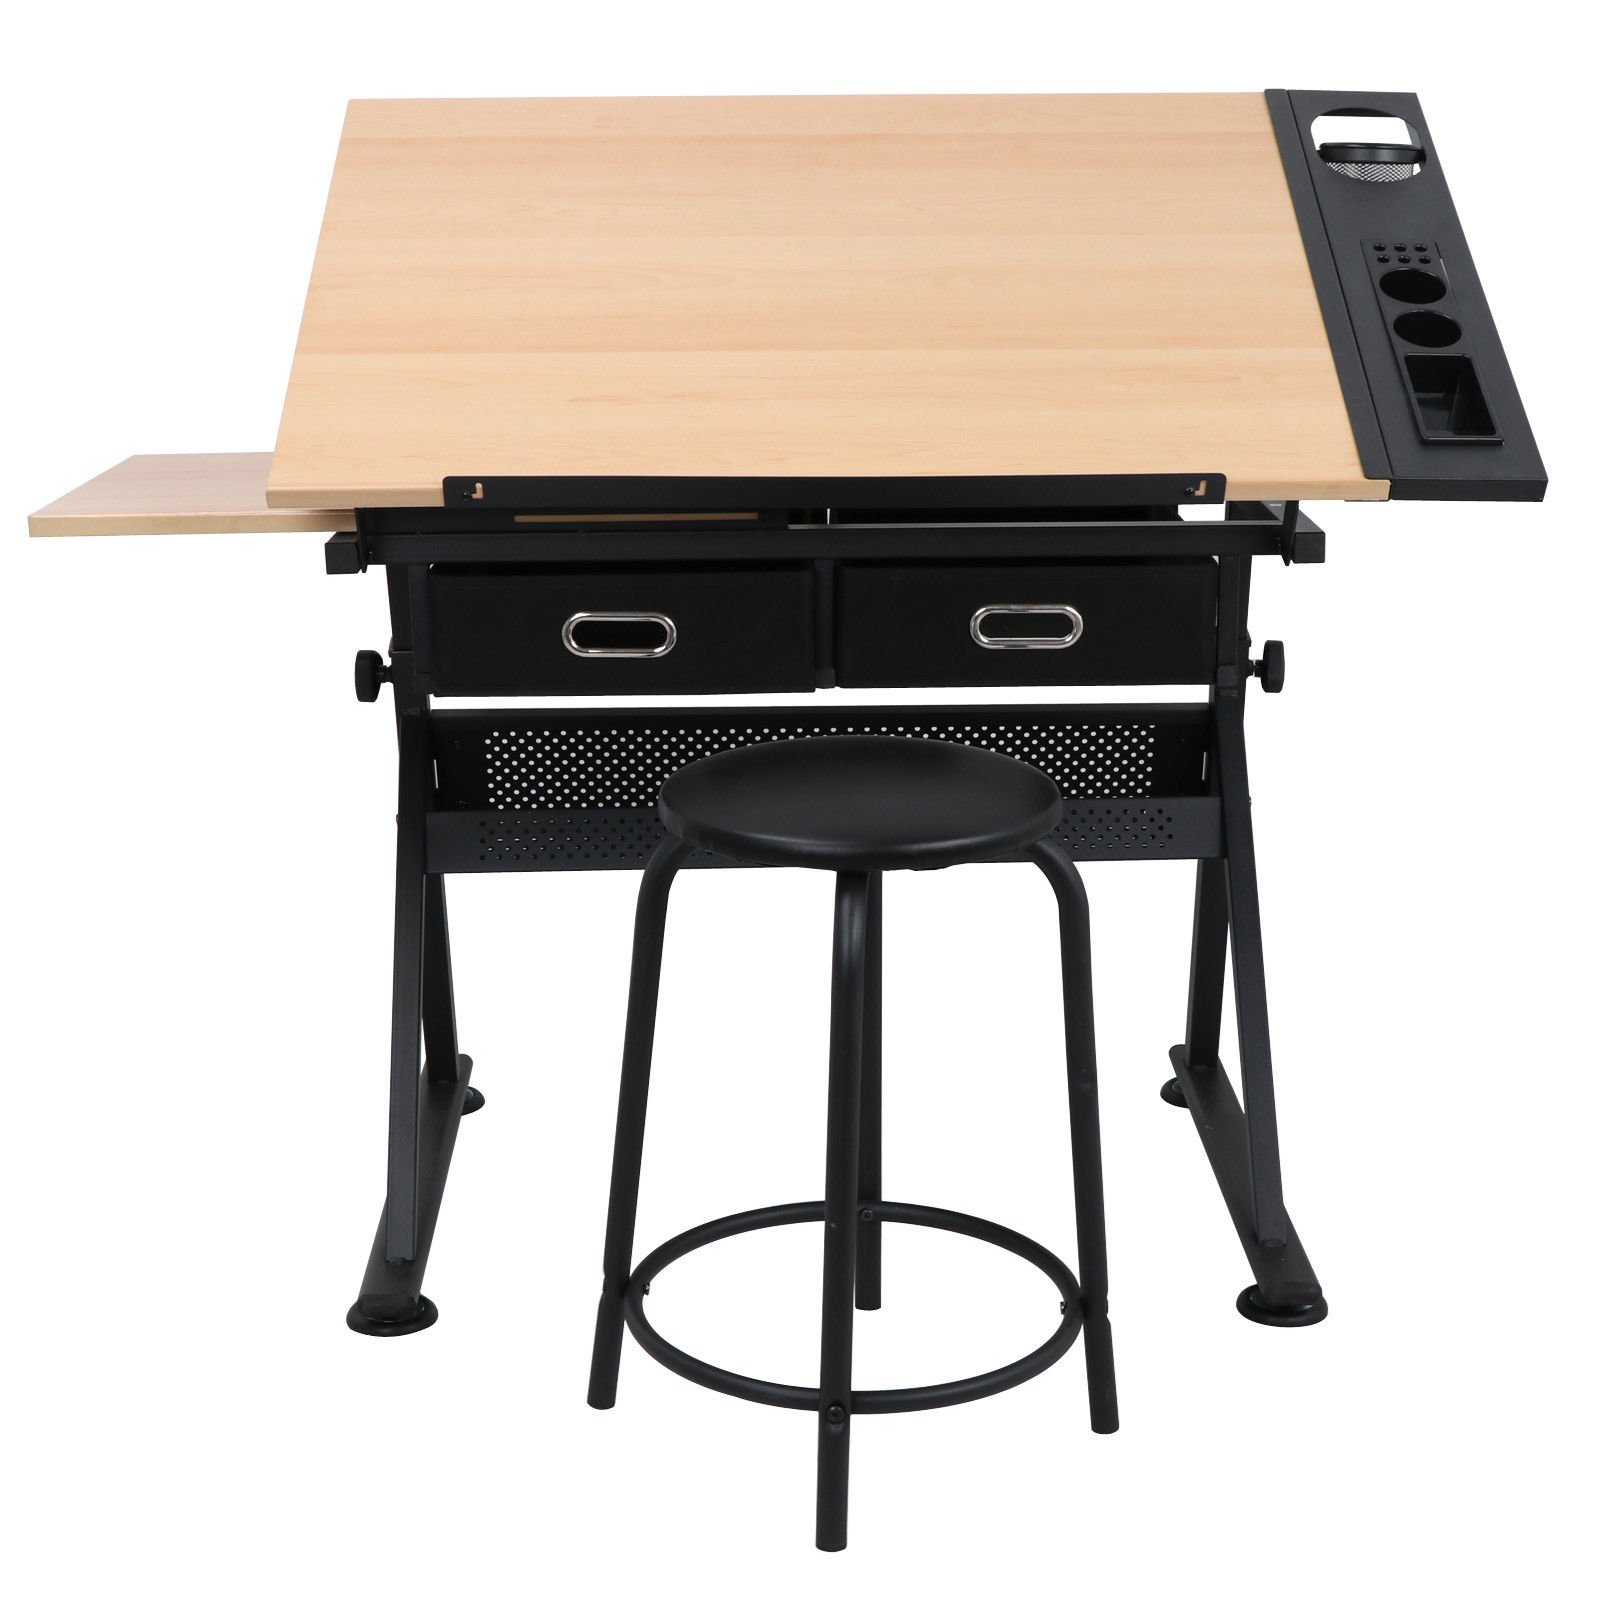 Tilting Tabletop Height Adjustable Drawing Desk with Padded Stool 2 Spacious Drawers Tools Storage Painting Drafting Writing Reading Study Table Draftsman Art Craft Hobby Studio Architect Office Work by HPW (Image #5)